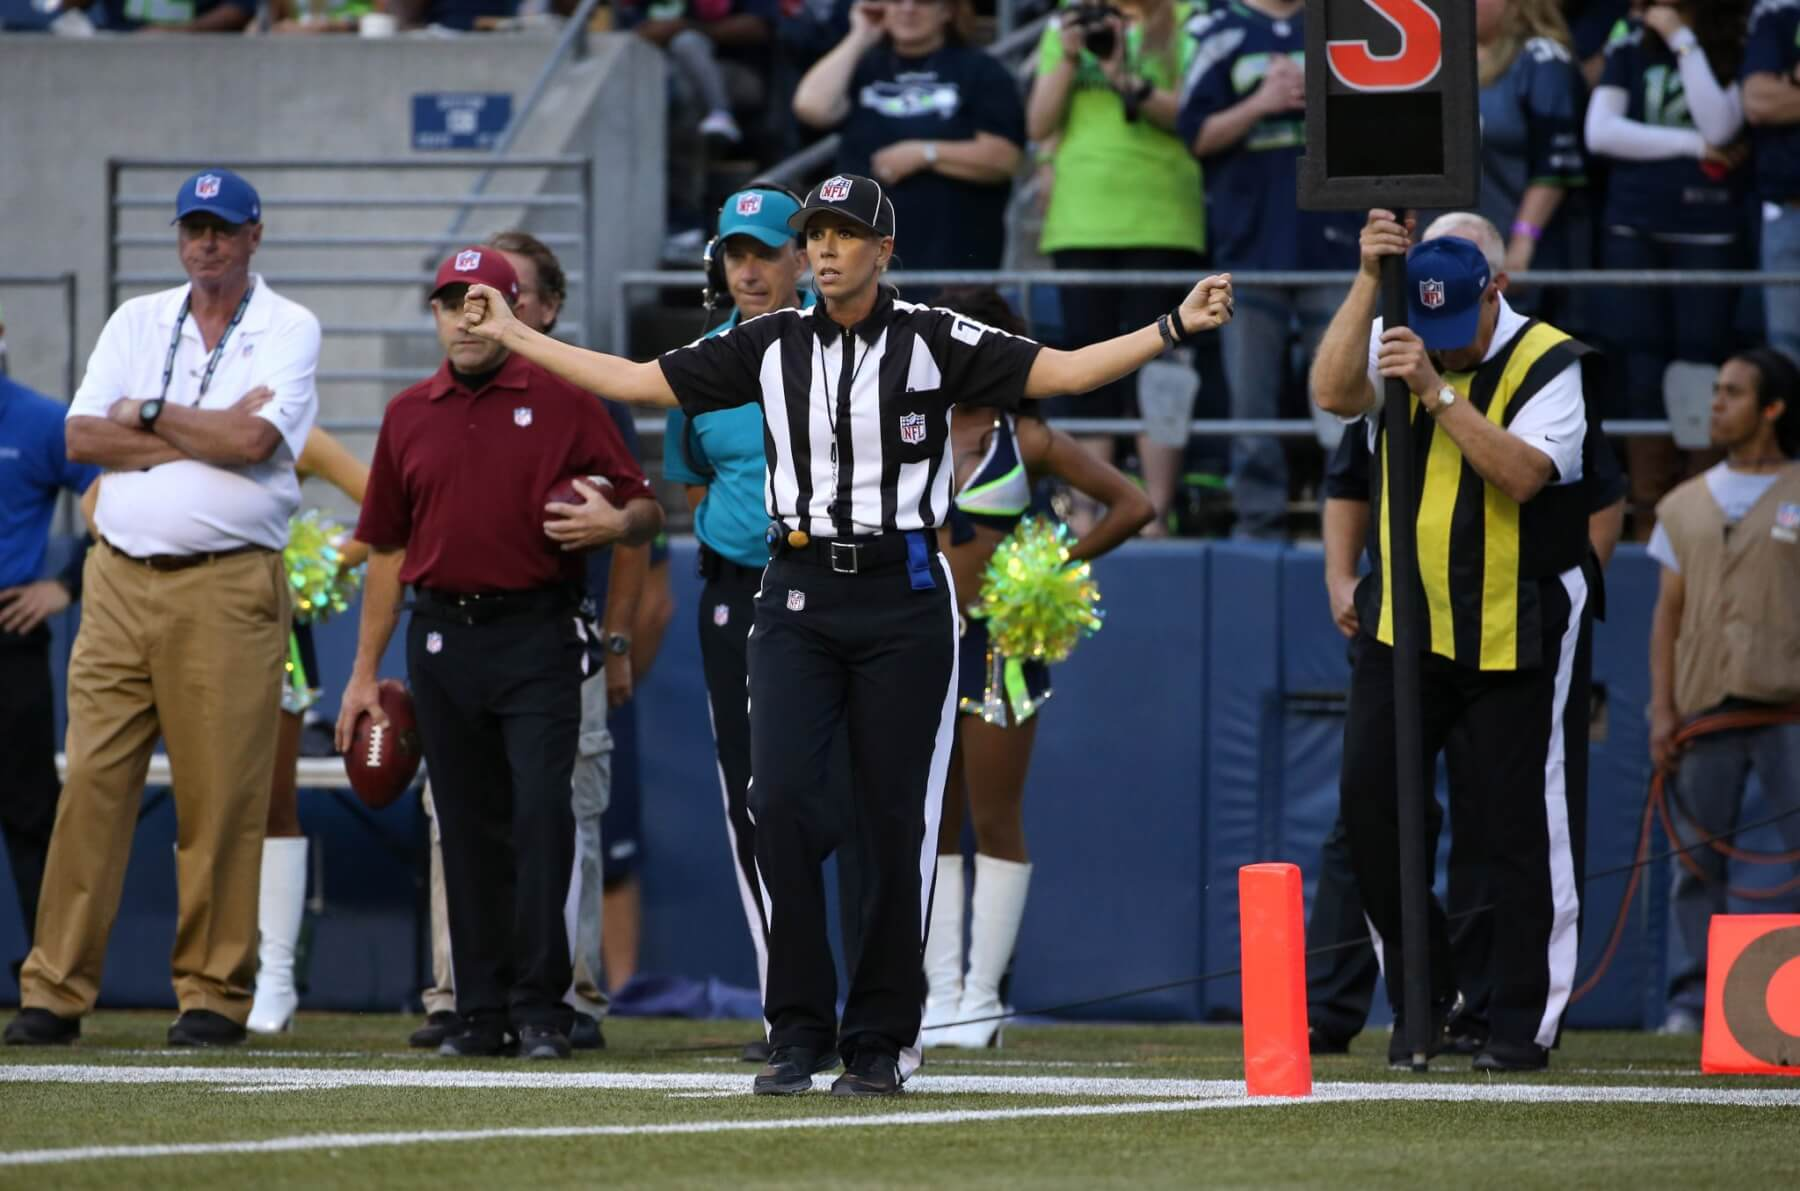 Former Lady Ram basketball star named NFL's first female official